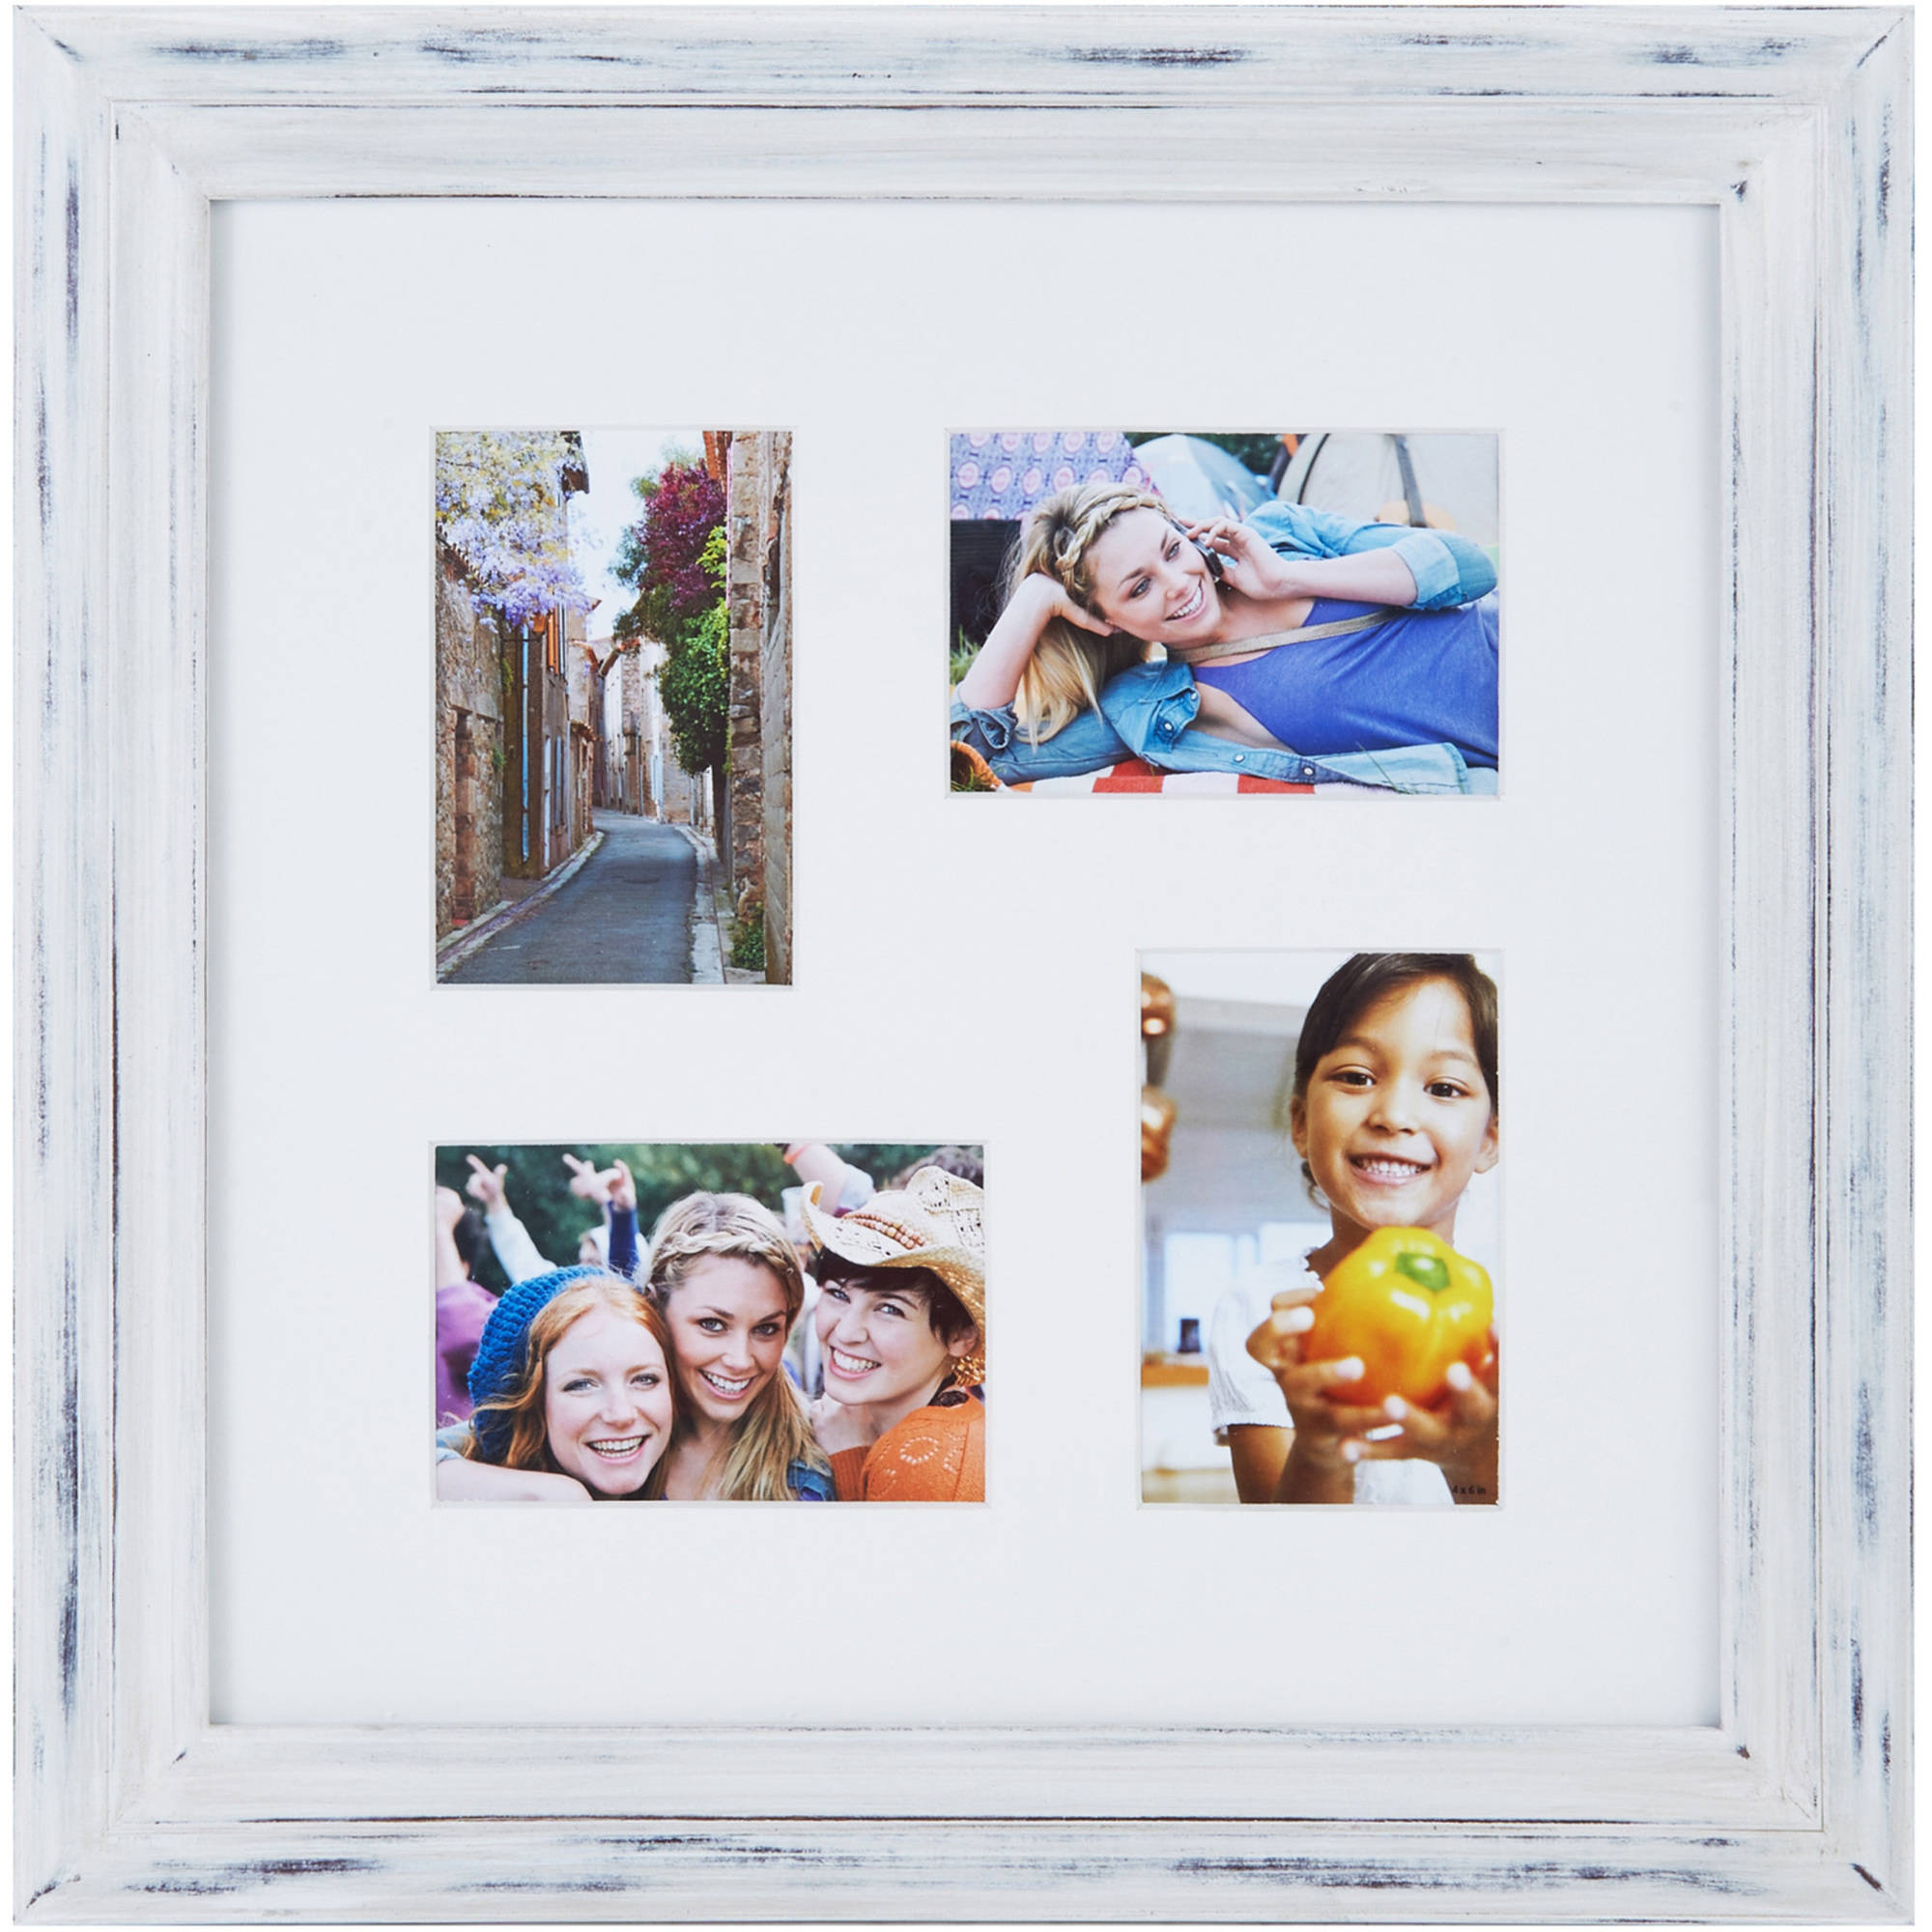 Melannco 4 Opening Distressed White Photo Collage, Picture Frame